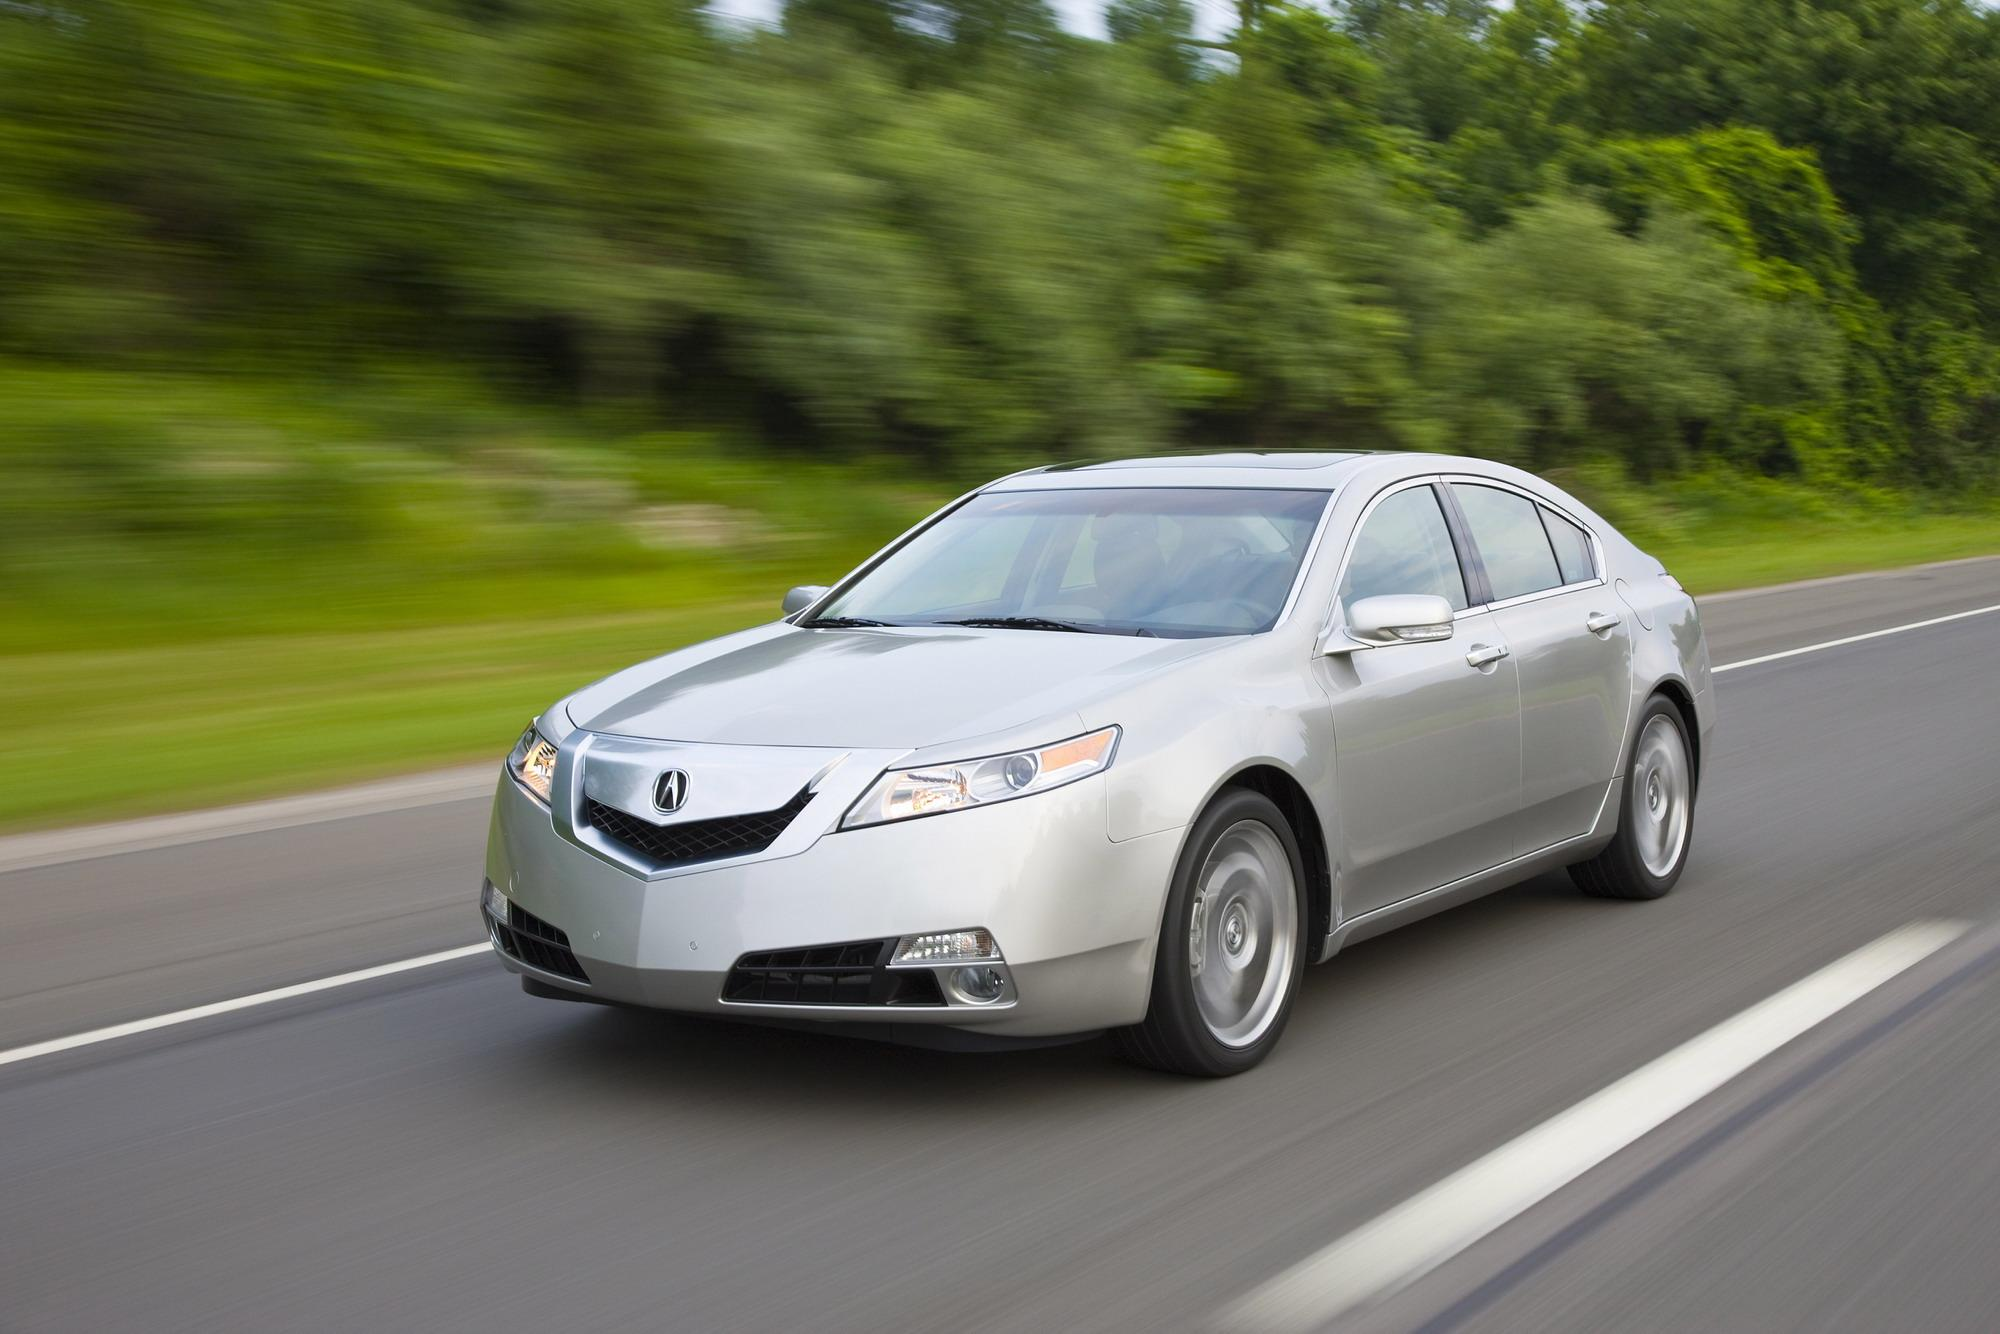 2010 Acura Tl To Be Offered With 6 Manual Guide